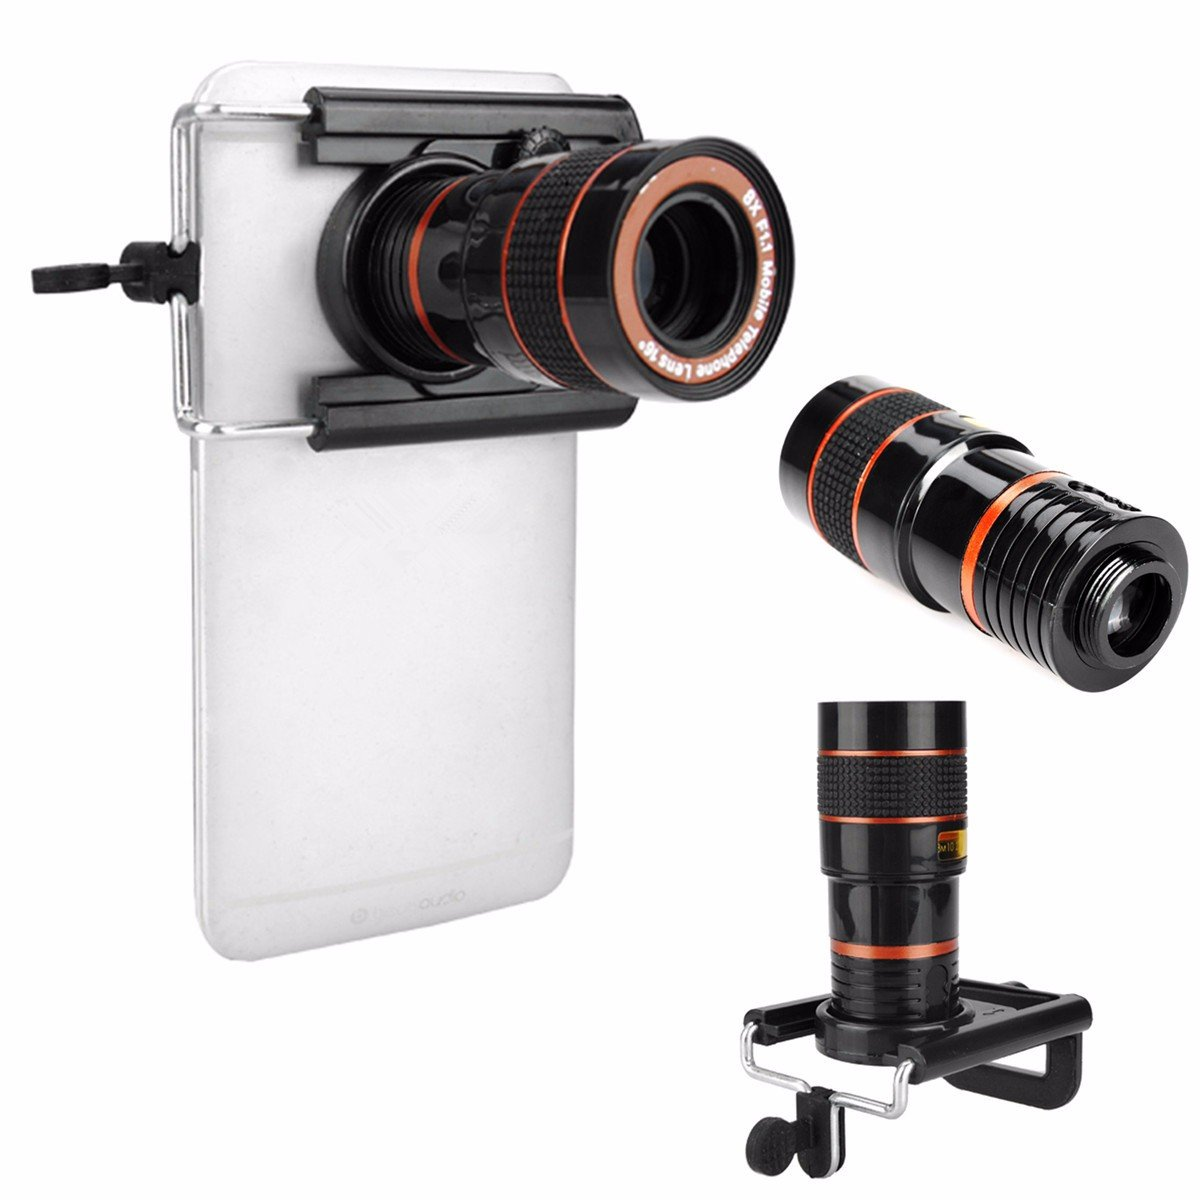 Universal Telephoto Lens Cell Phone Telescope Mway Hiking Concert Mobile 8x Optical Zoom With Clamp Black Camera Holder For Middle